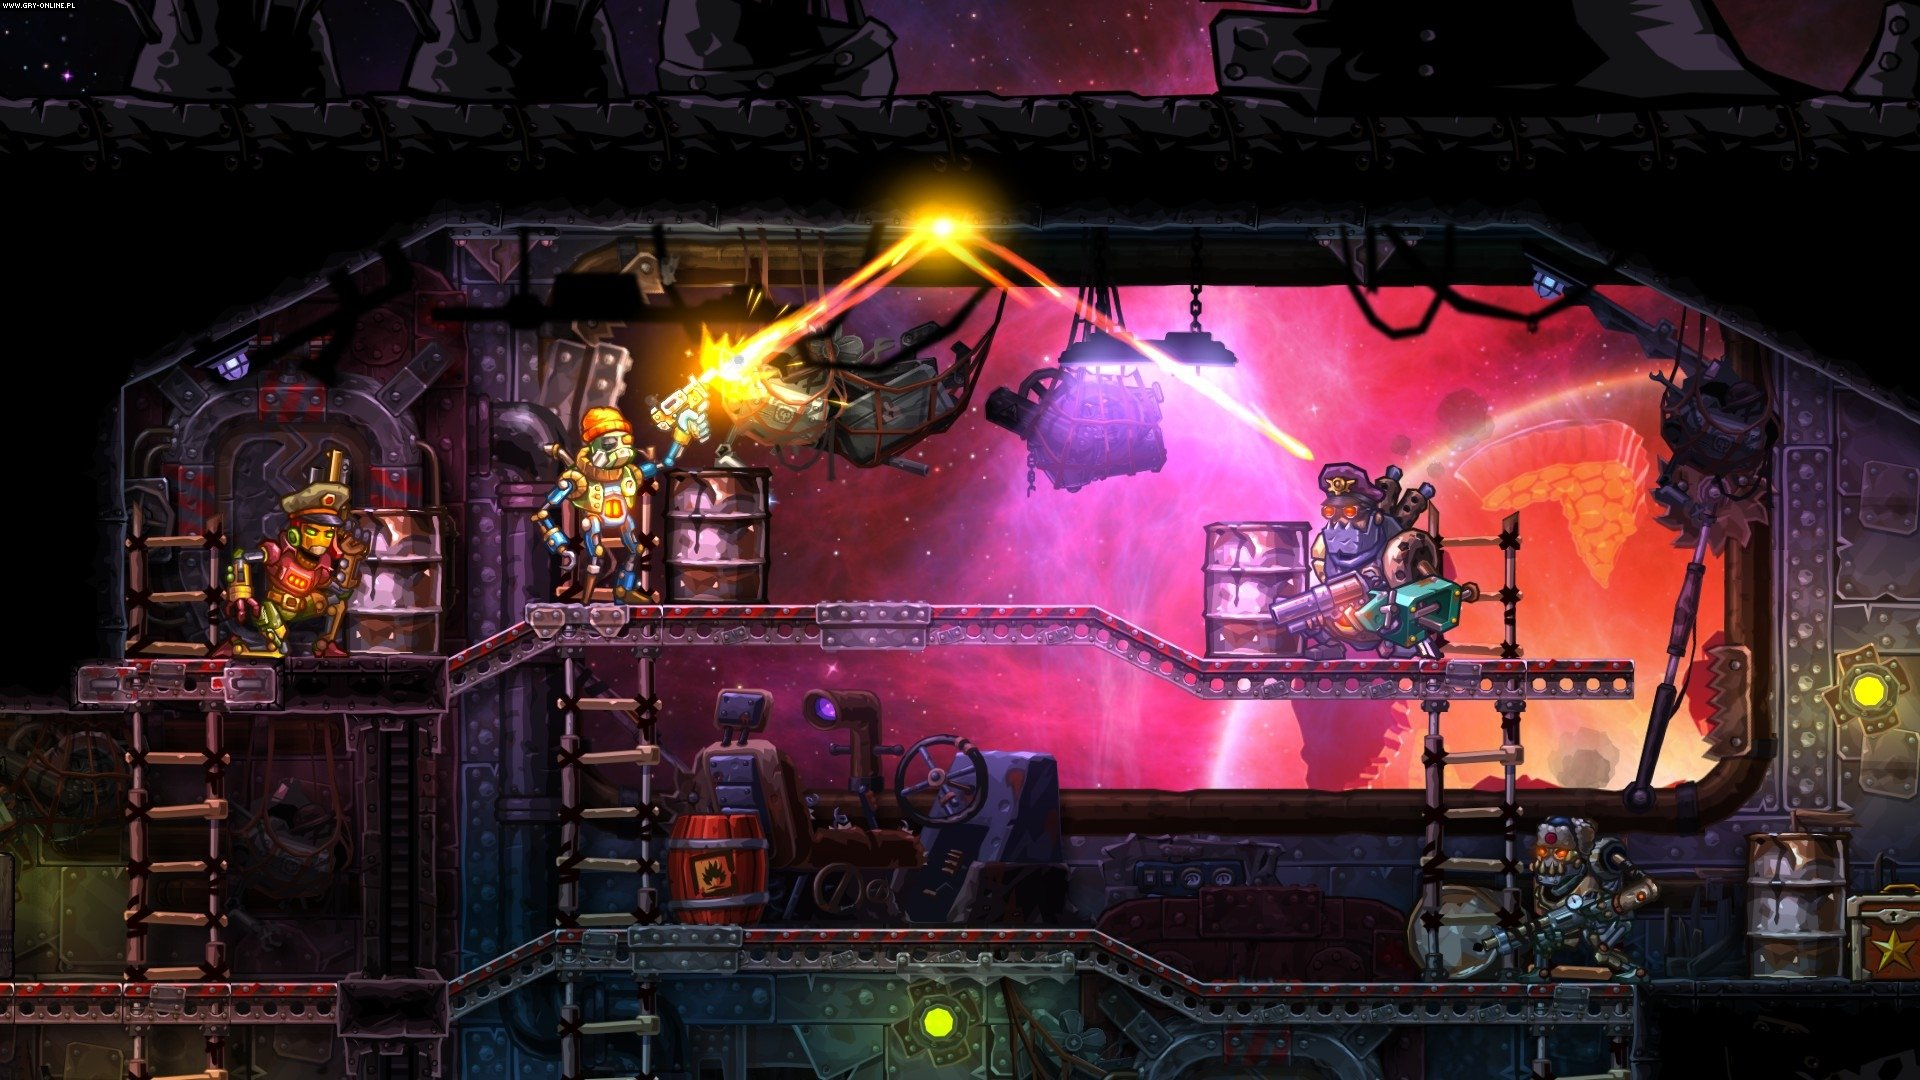 SteamWorld Heist PC, 3DS, PSV, WiiU, PS4, XONE, Switch Gry Screen 1/12, Image & Form